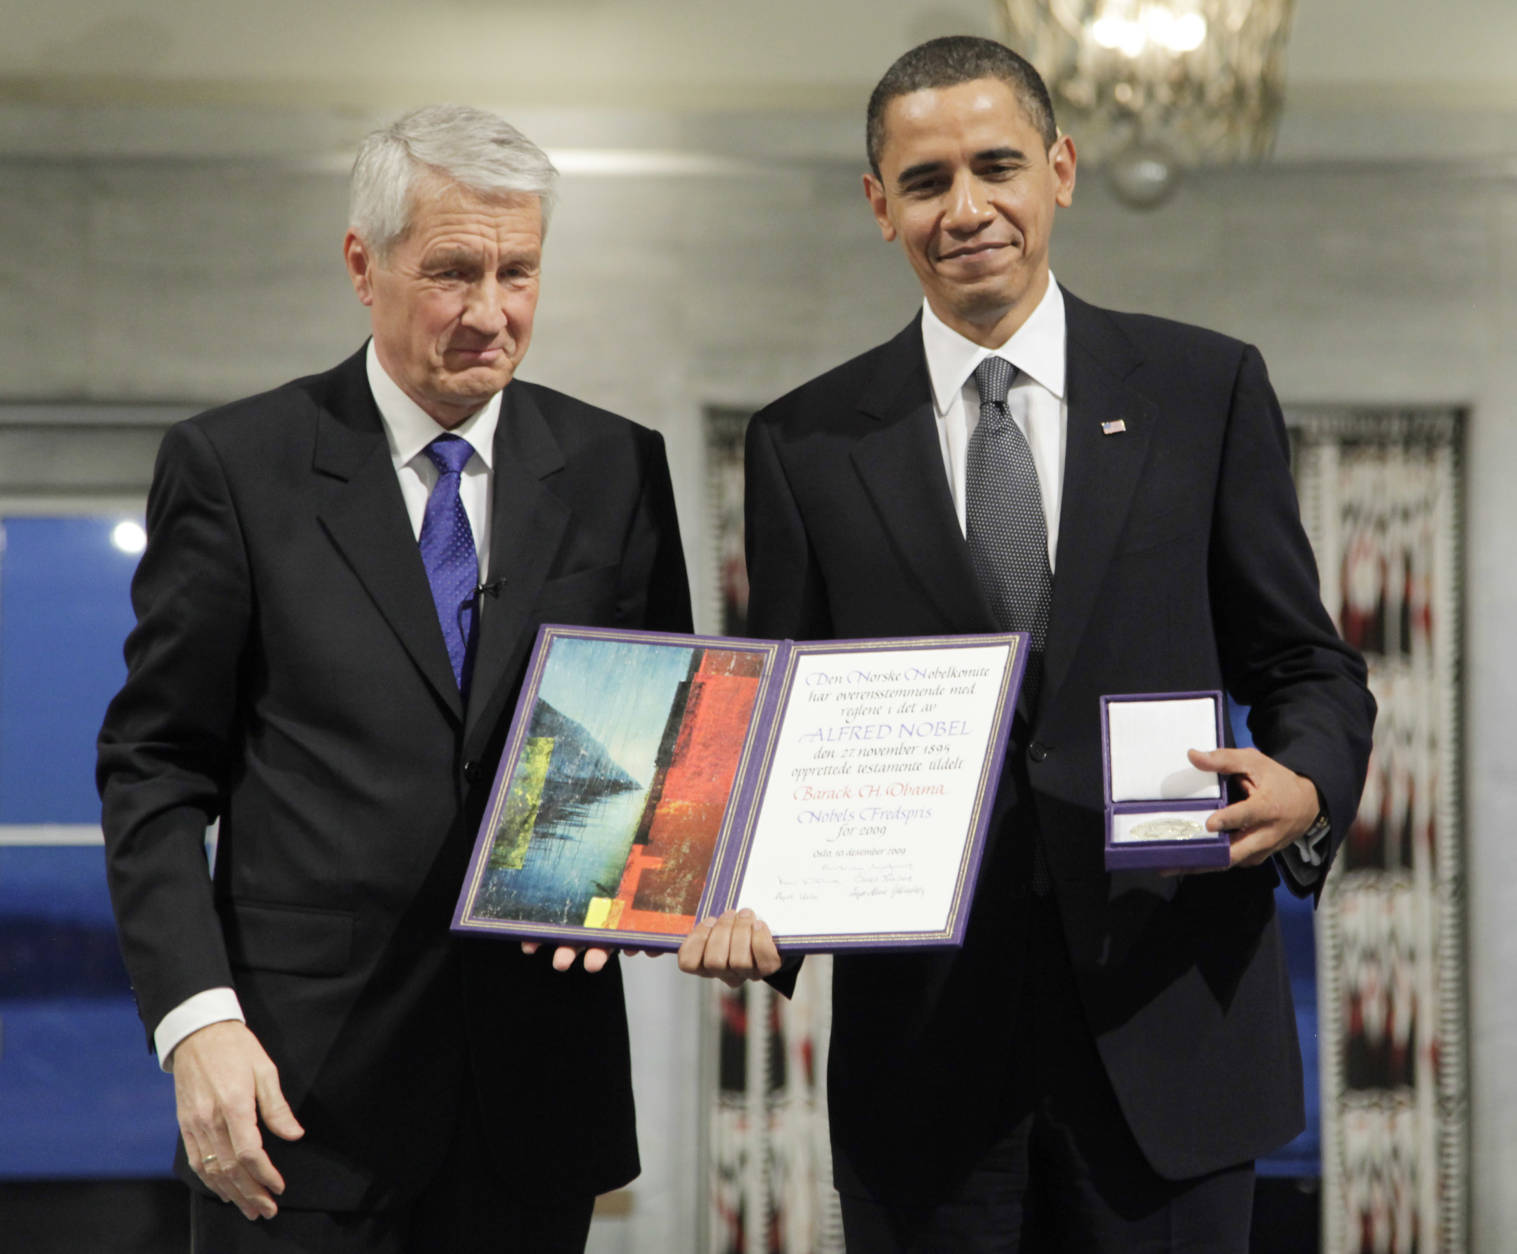 FILE - In this Dec. 10, 2009, file photo, President and Nobel Peace Prize laureate Barack Obama poses with his medal and diploma alongside Nobel committee chairman Thorbjorn Jagland at the Nobel Peace Prize ceremony at City Hall in Oslo, Norway. (AP Photo/John McConnico, File)